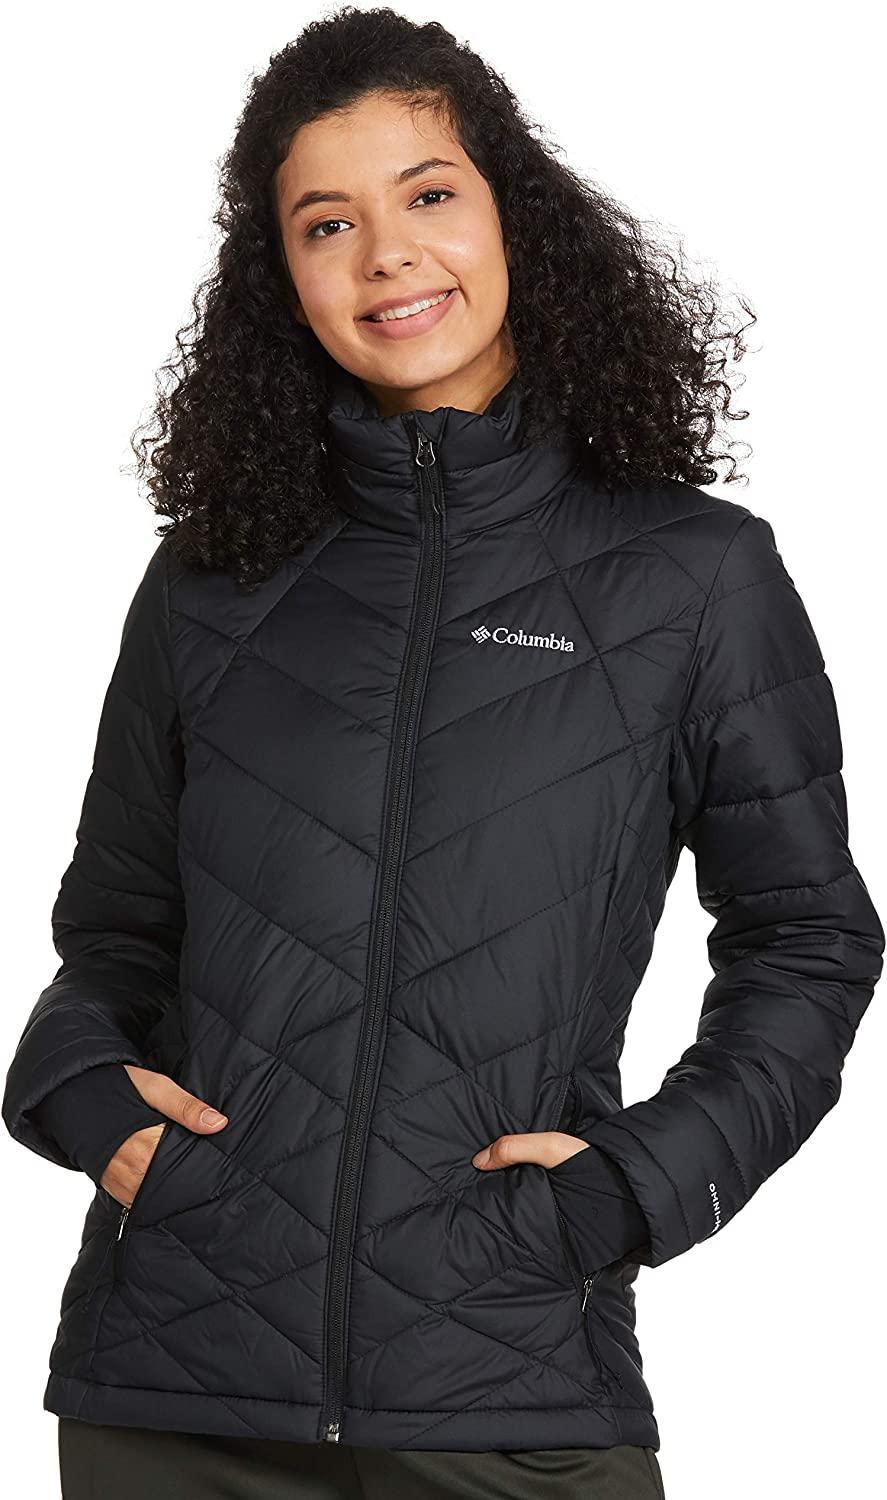 Columbia Women's Heavenly Jacket, Insulated, Water Resistant Maine